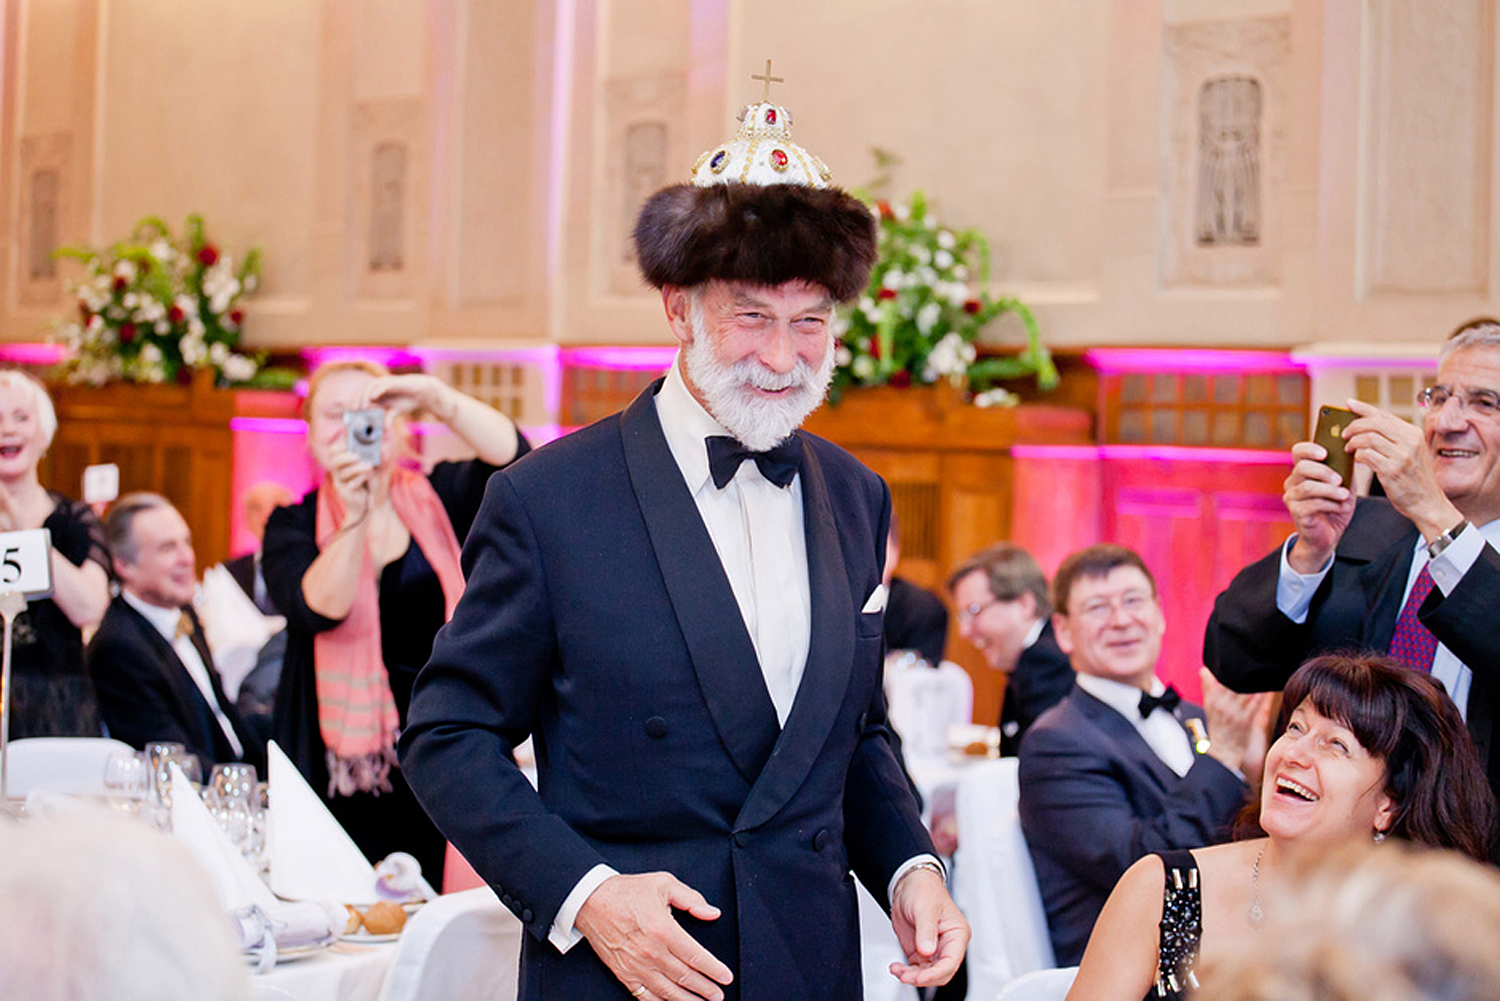 Russian Spies In The British Royal Family? Prince Michael Offers Connections To Kremlin